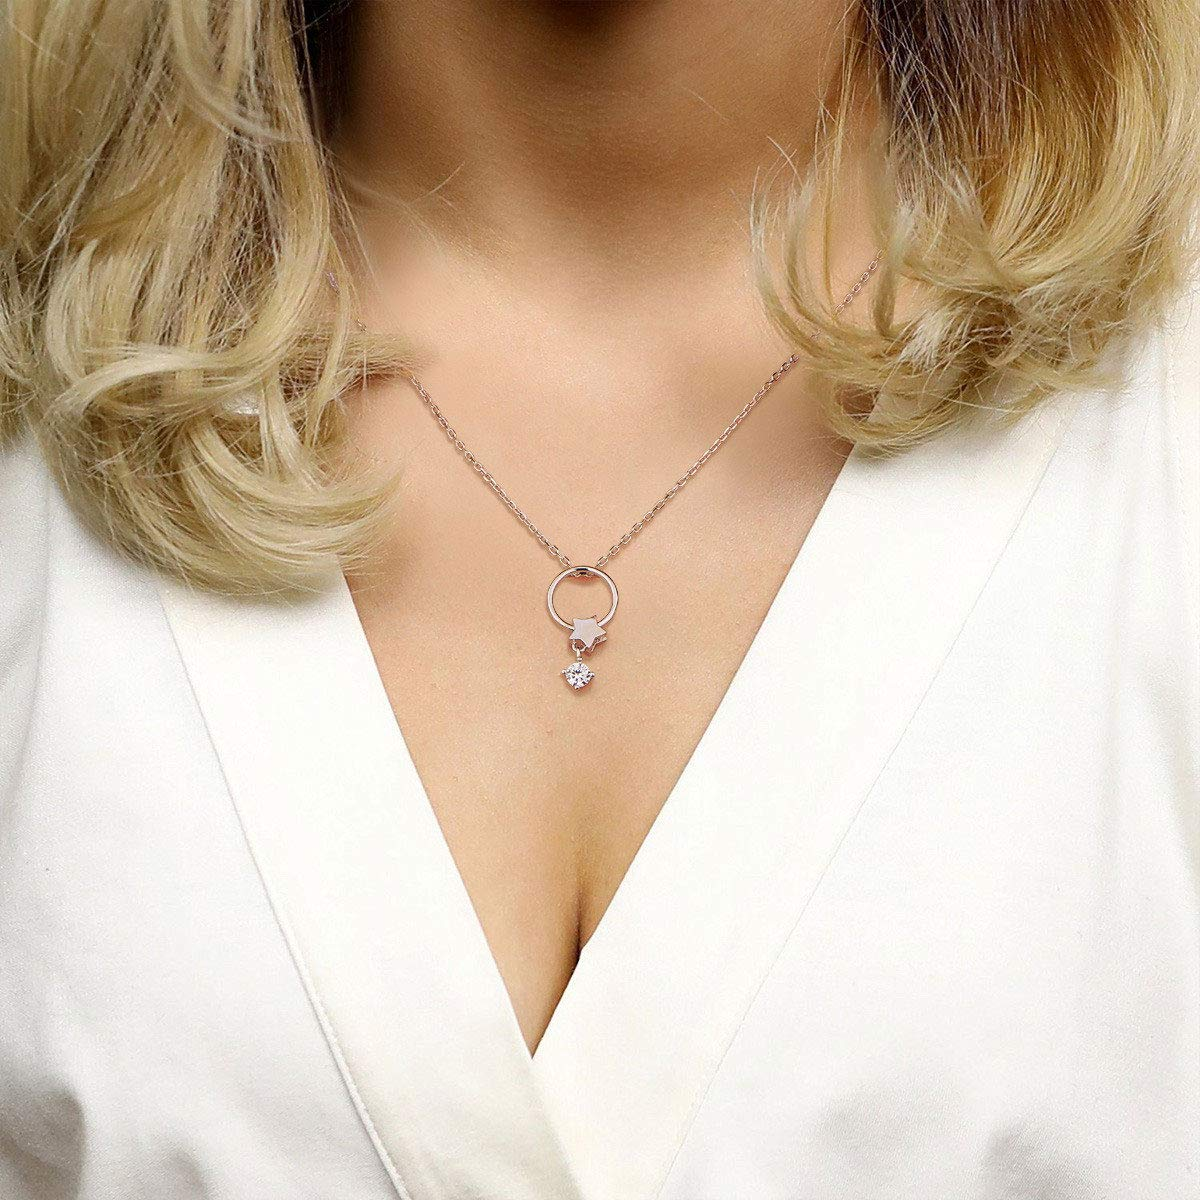 SHEGRACE Circle Star Pendant Necklace S925 with Cubic Zirconia Necklaces Jewelry for Woman Girls,17